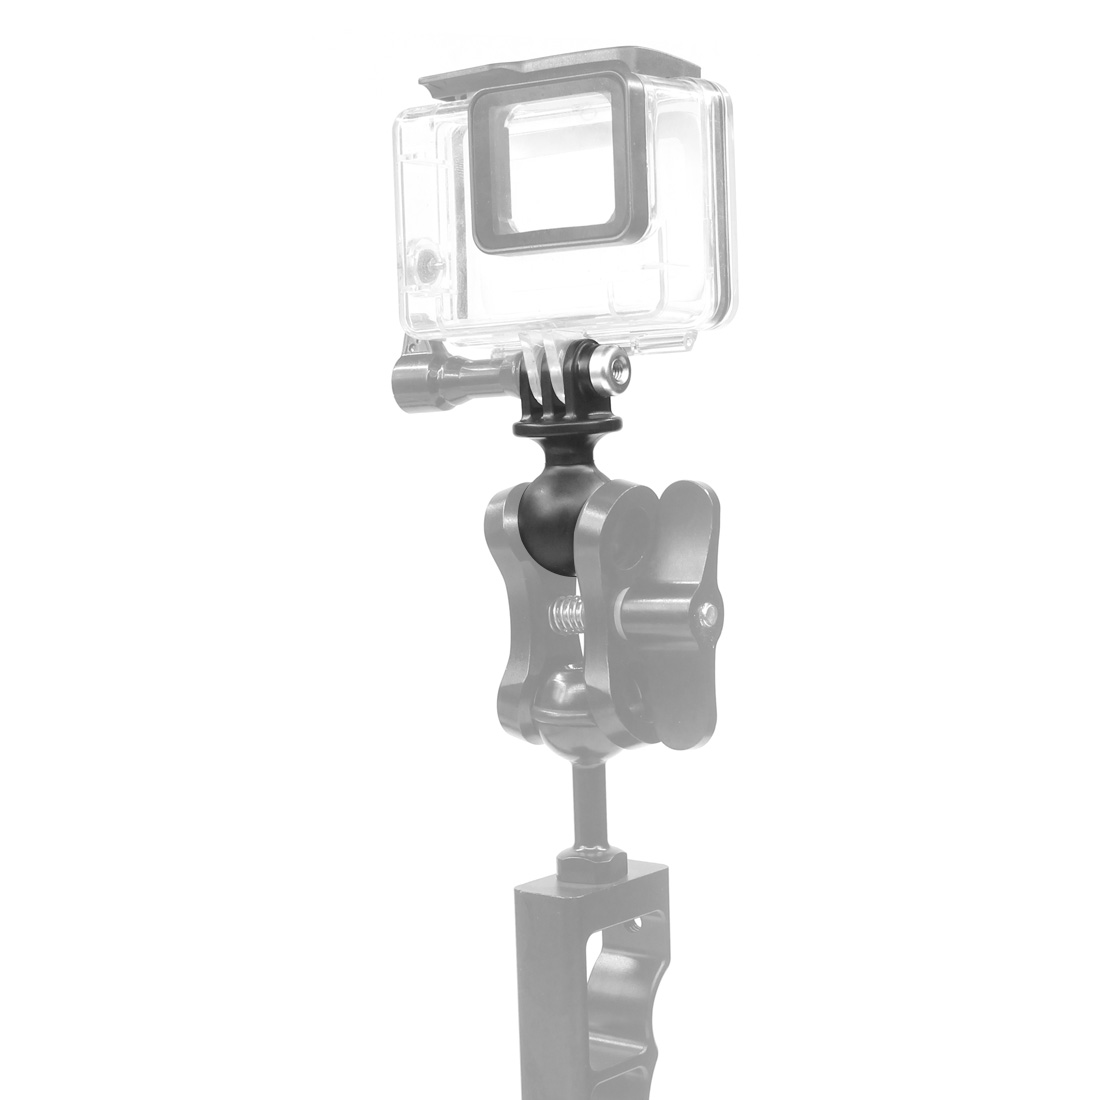 Portable Mini Tripod Ball Head Base Adapter Plastic for GoPro Hero 8 7 6 5 Osmo Action Sjcam Yi Camera for RAM Mounts Motorcycle